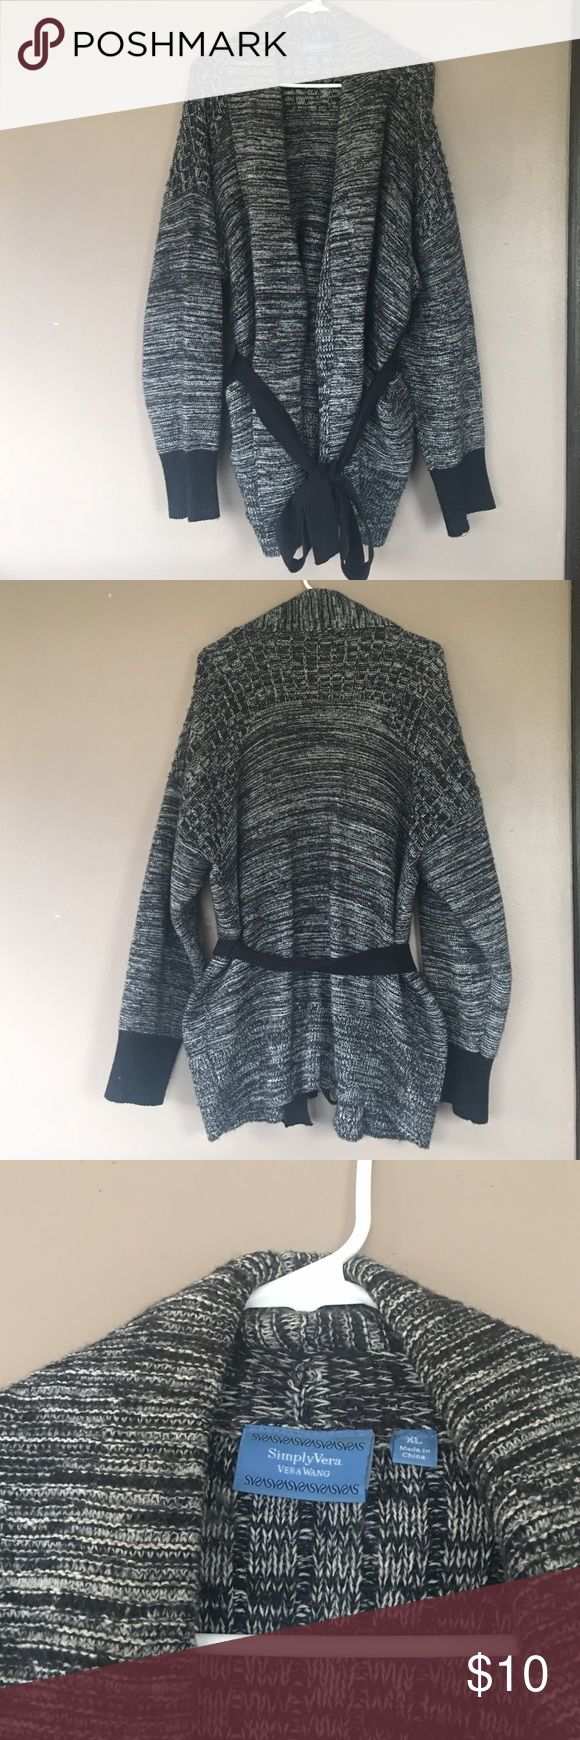 Simply Vera by Vera Wang Sweater Simply Vera by Vera Wang Sweater. Tie around closure or can be tied in the back. Two front pockets. Worn but still in good condition. No stains or holes. Simply Vera Vera Wang Sweaters Cardigans